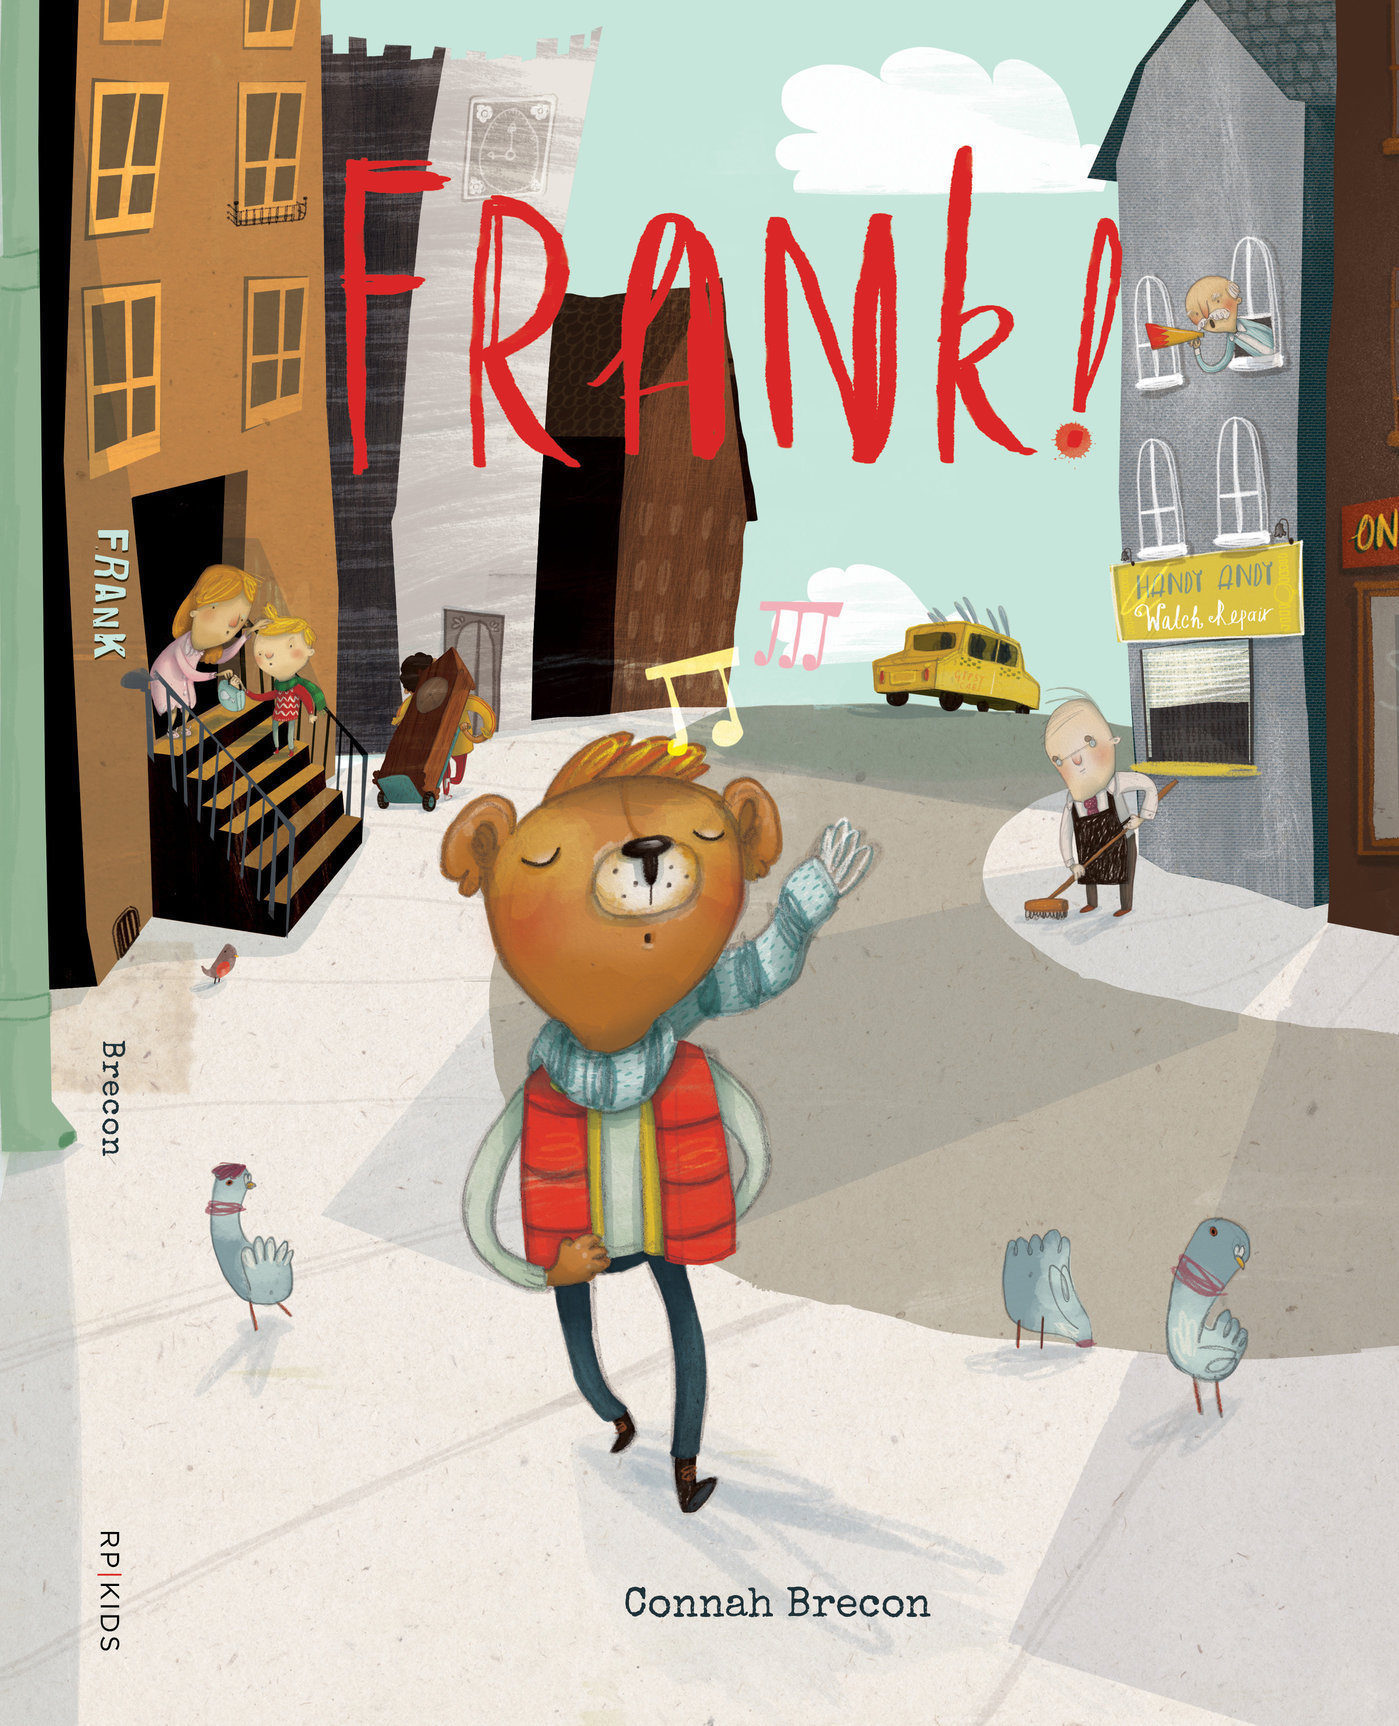 Book of the Week: Frank!